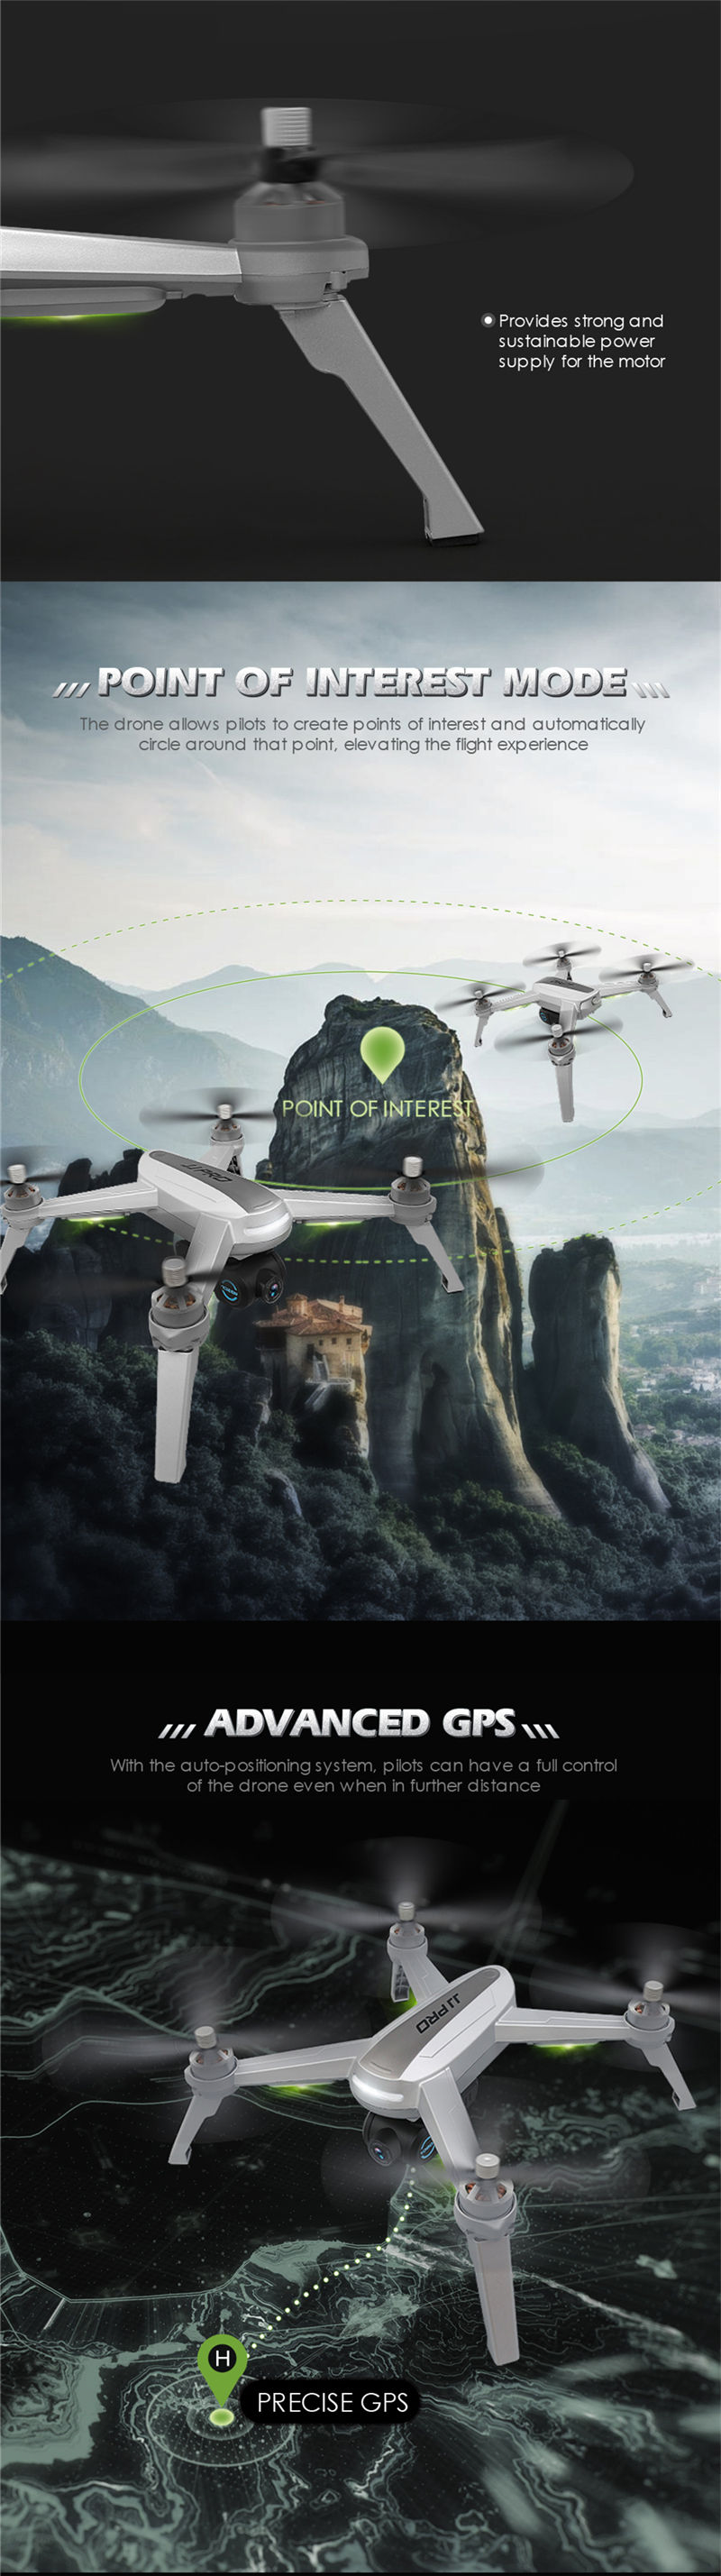 Free Gifts! JJRC JJPRO X5 5G GPS WIFI FPV With 1080P HD Camera Max 18 Mins Follow Me Altitude Hold RC Drone Quadcopter RTF 4